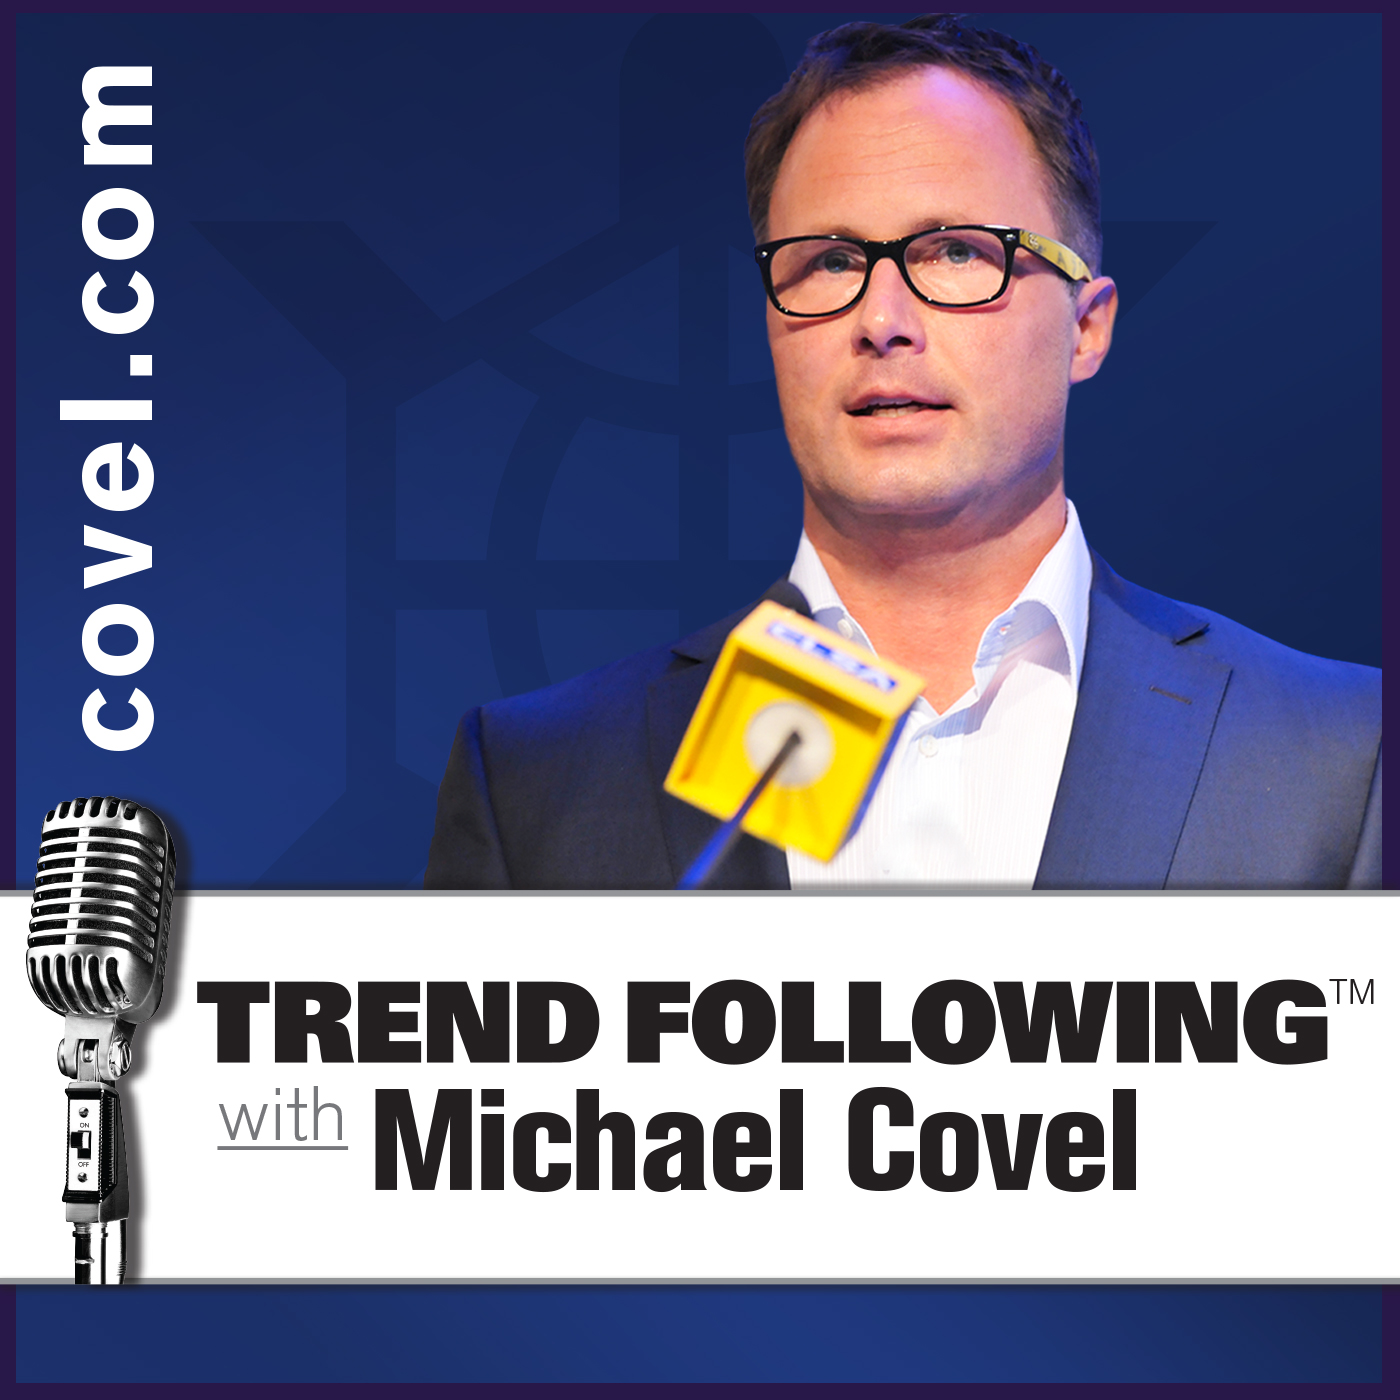 Ep. 523: Tom Asacker Interview #2 with Michael Covel on Trend Following Radio